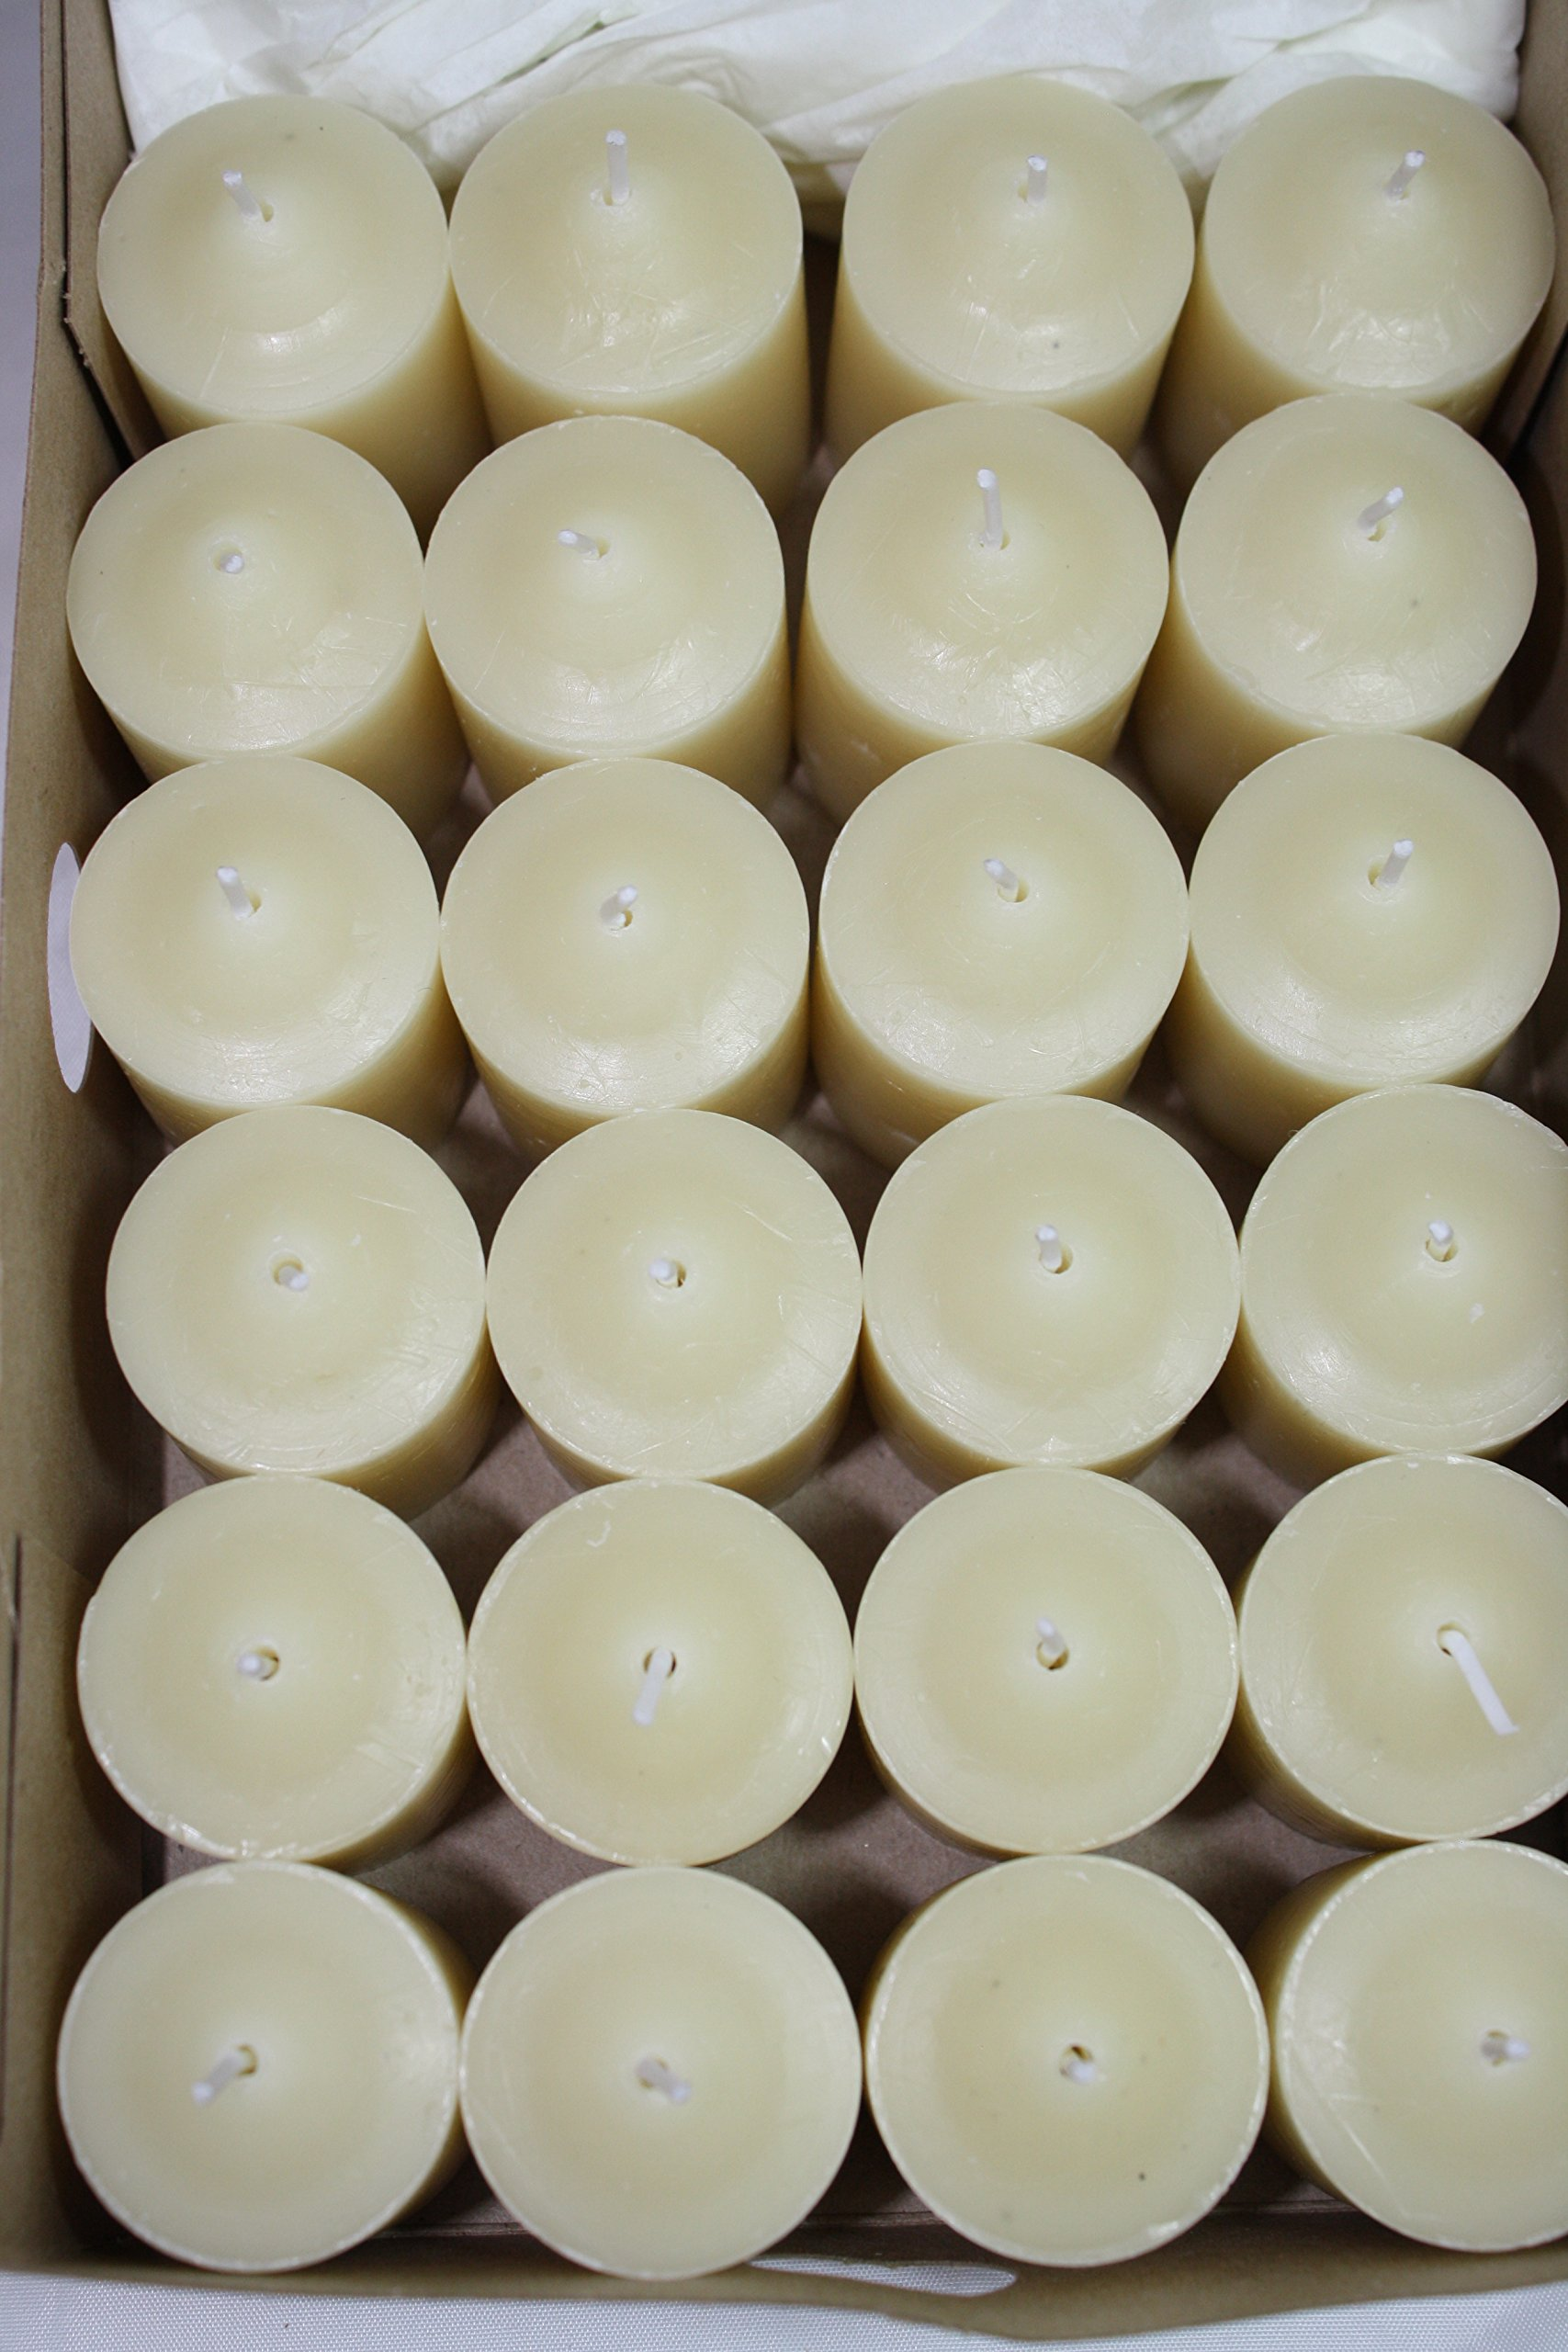 Enlightened Ambience Tibetan Sandalwood Ivory Highly Scented 24 Votives by Enlightened Ambience